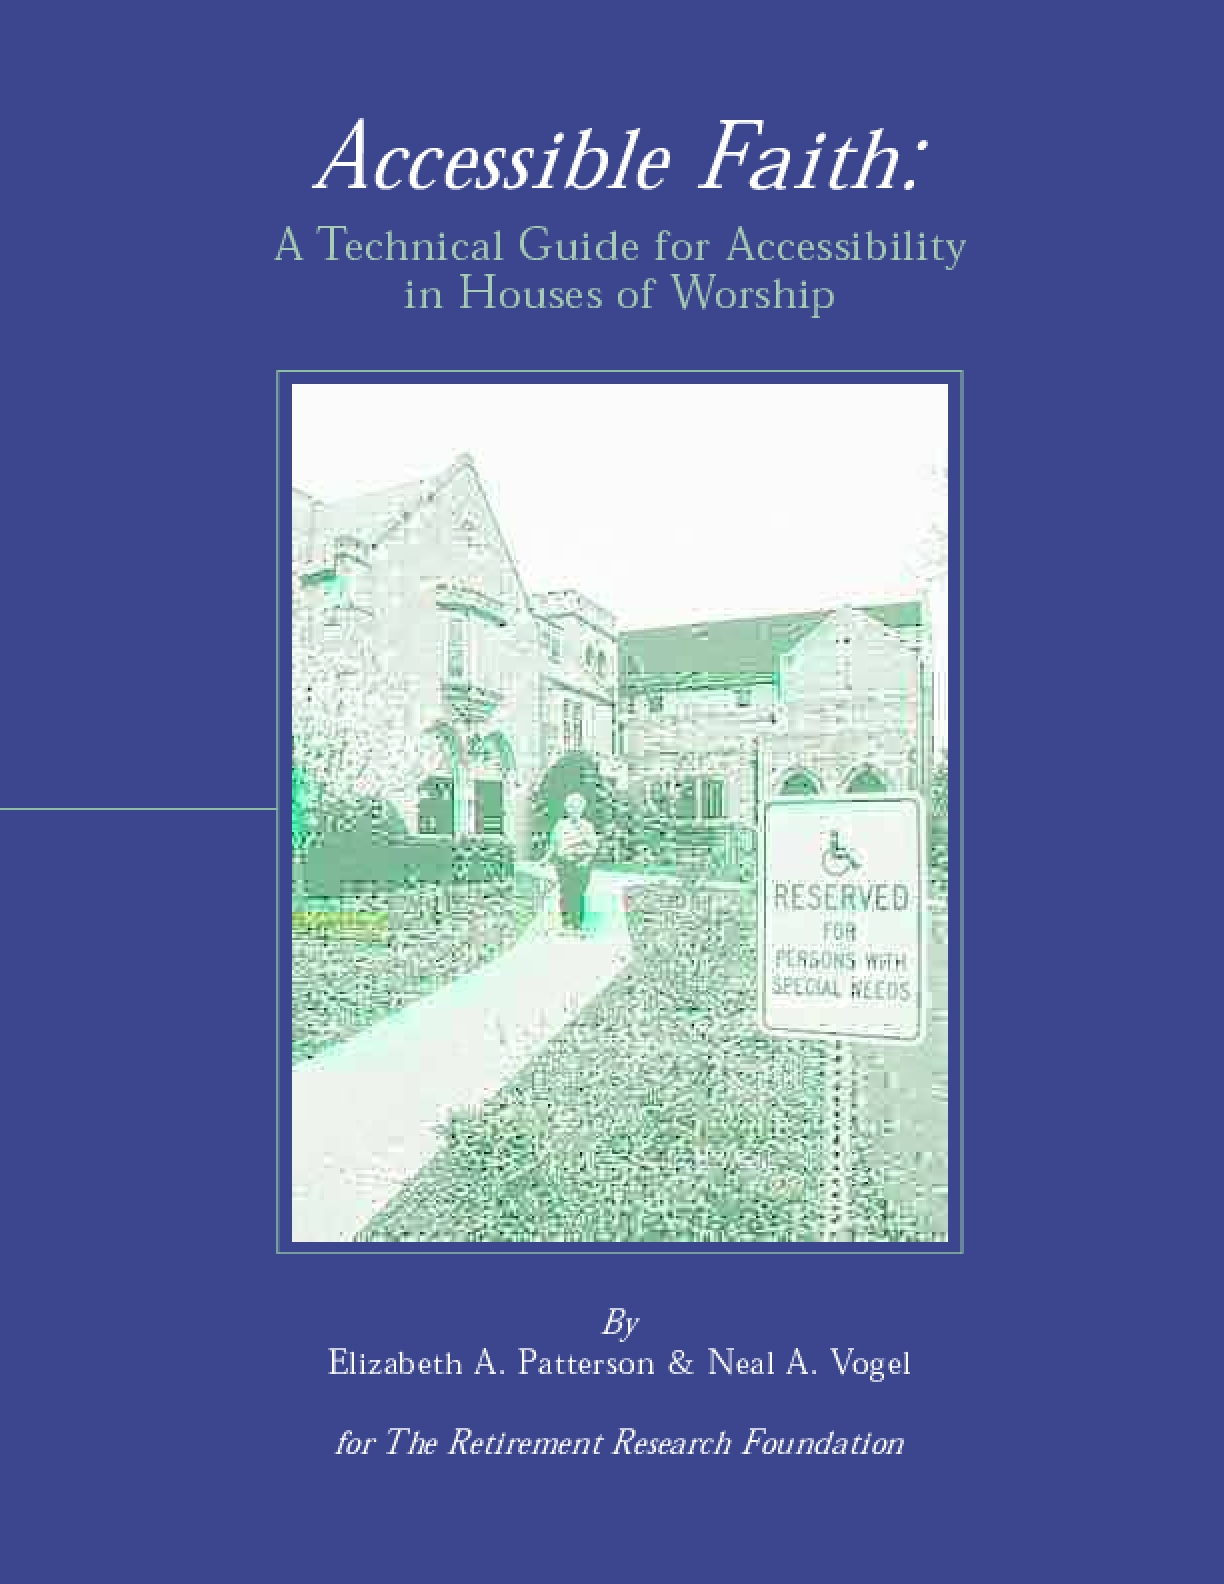 Accessible Faith: A Technical Guide for Accessibility in Houses of Worship